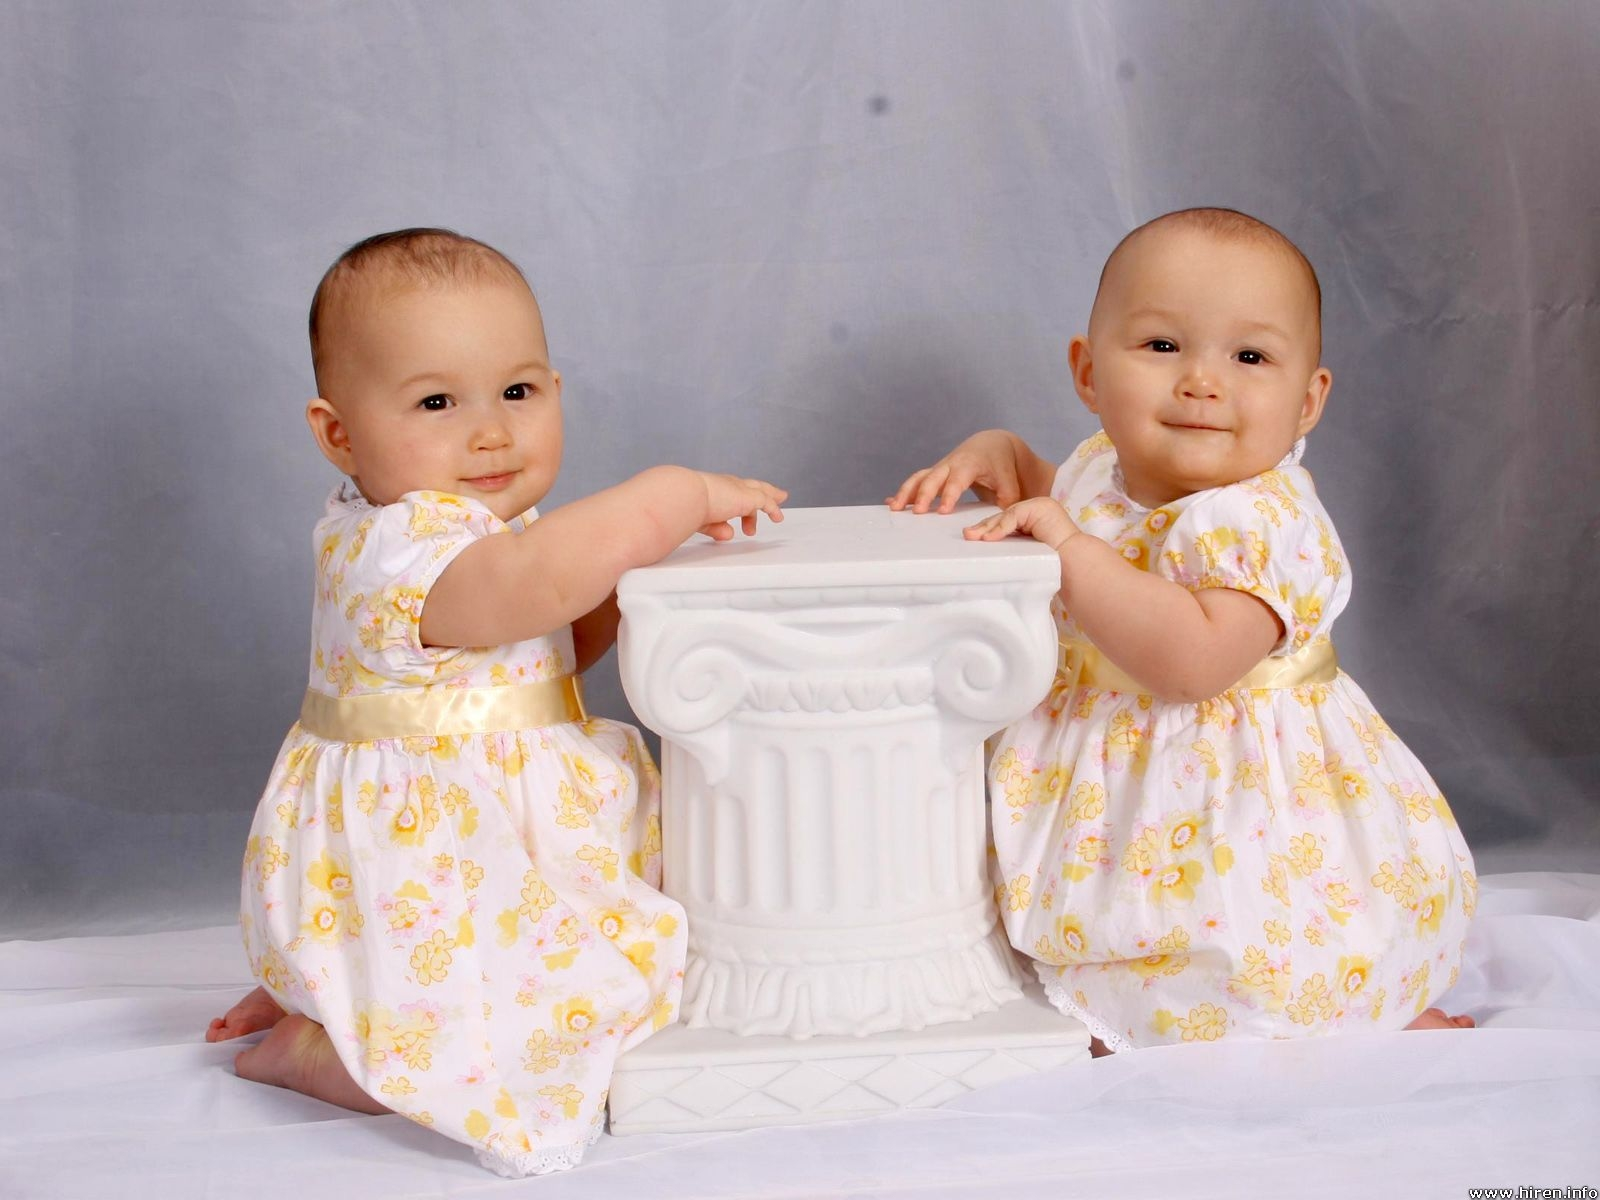 Cute Twins Baby Girls Kids Wallpaper | Free New Desktop Wallpapers Wallpaper